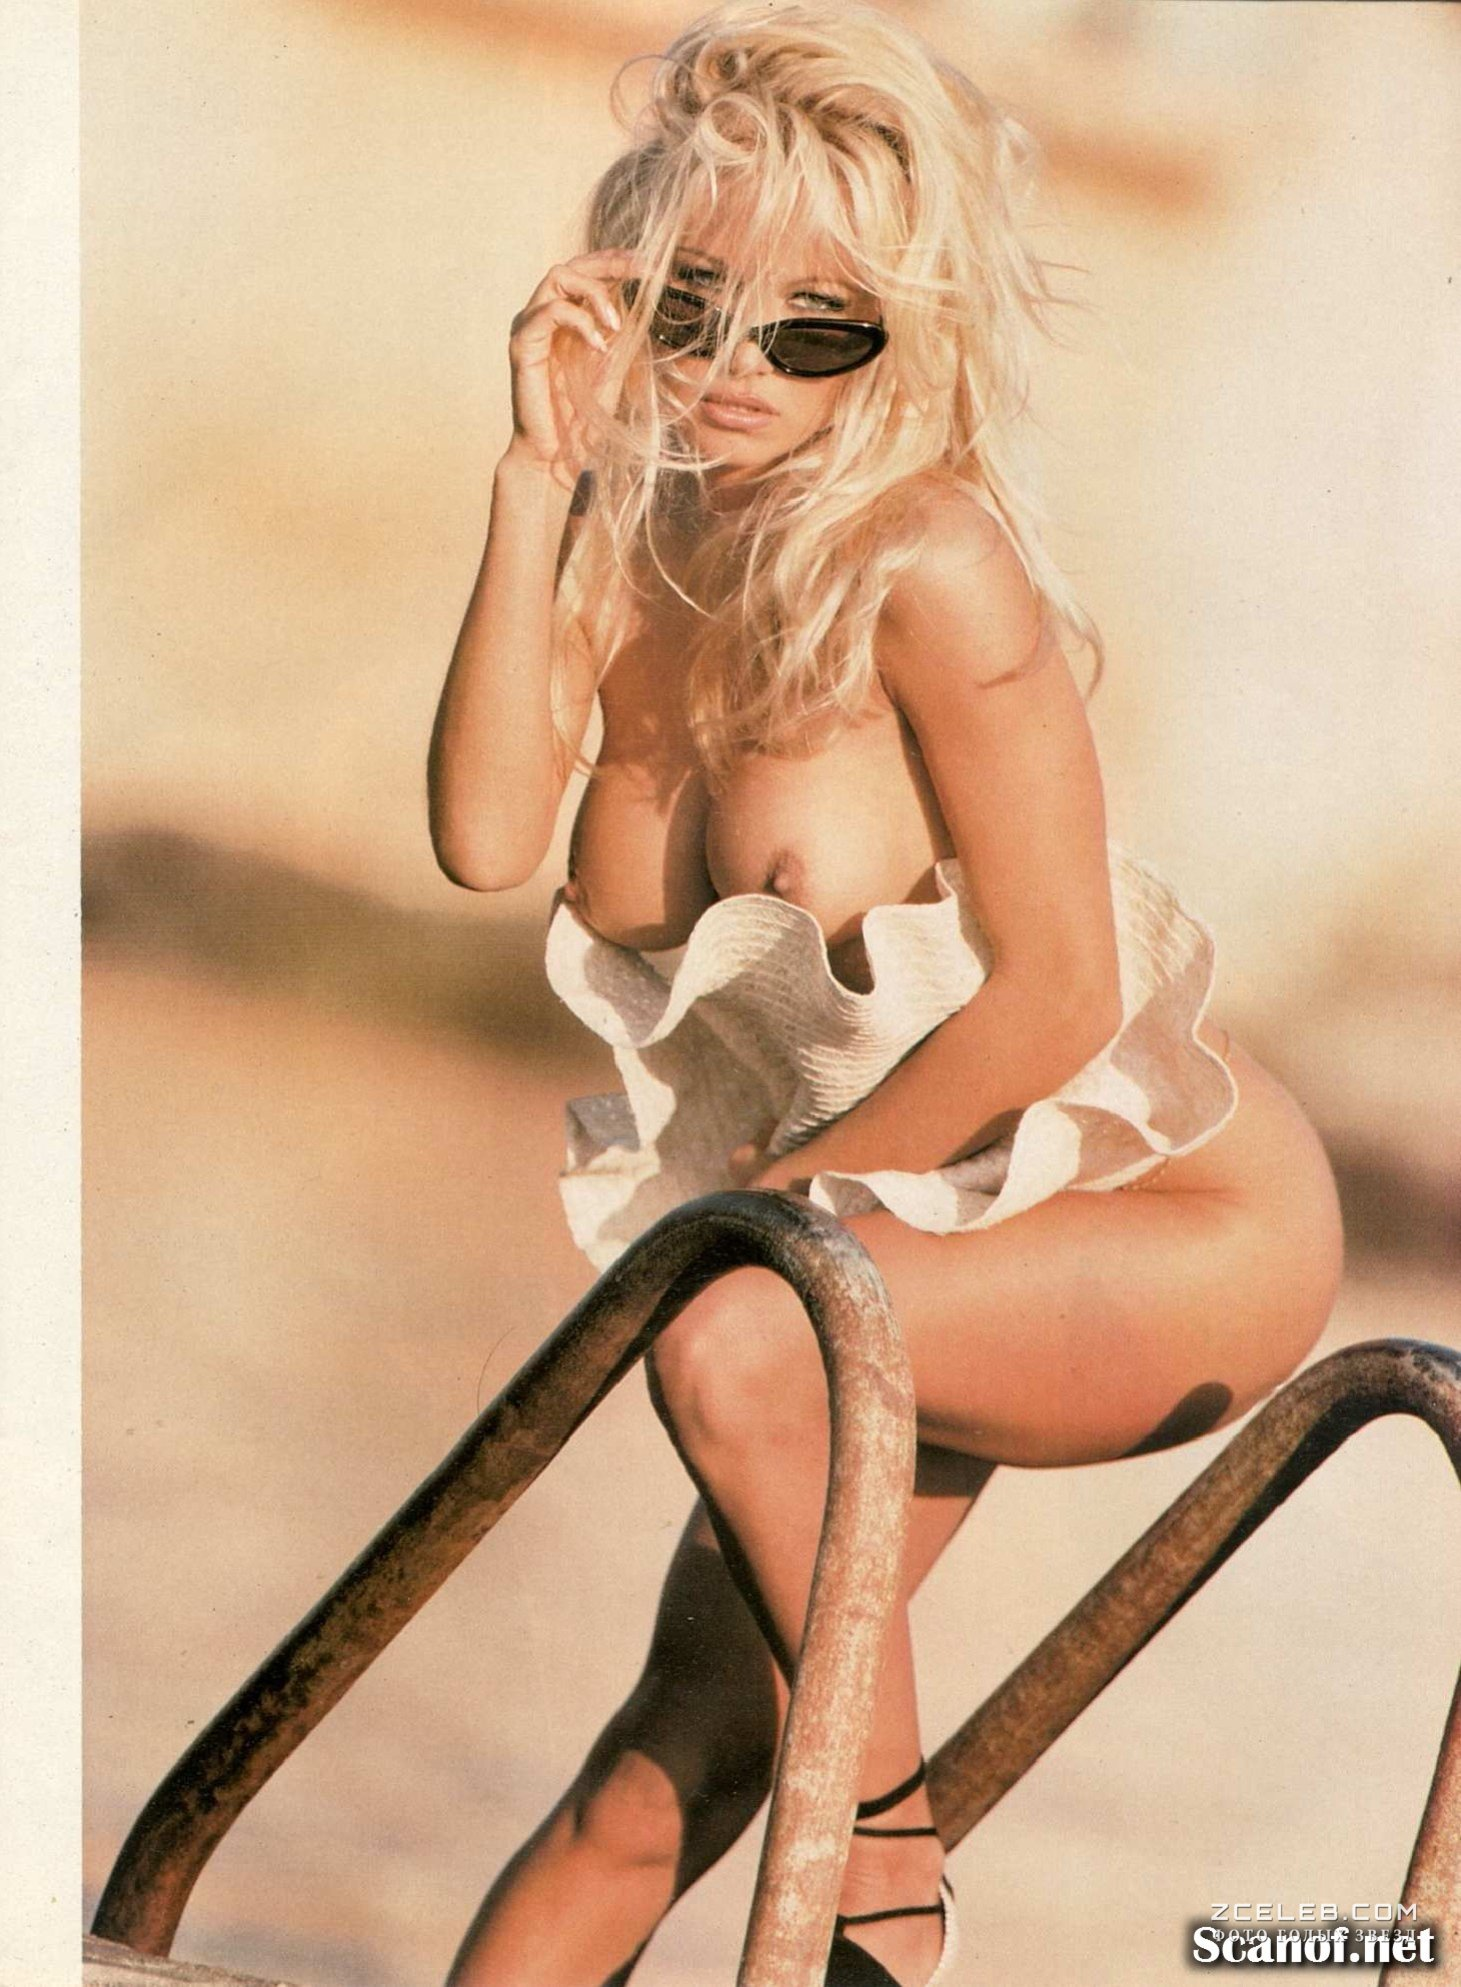 pamela-anderson-ever-done-nude-pictures-adult-free-asian-movies